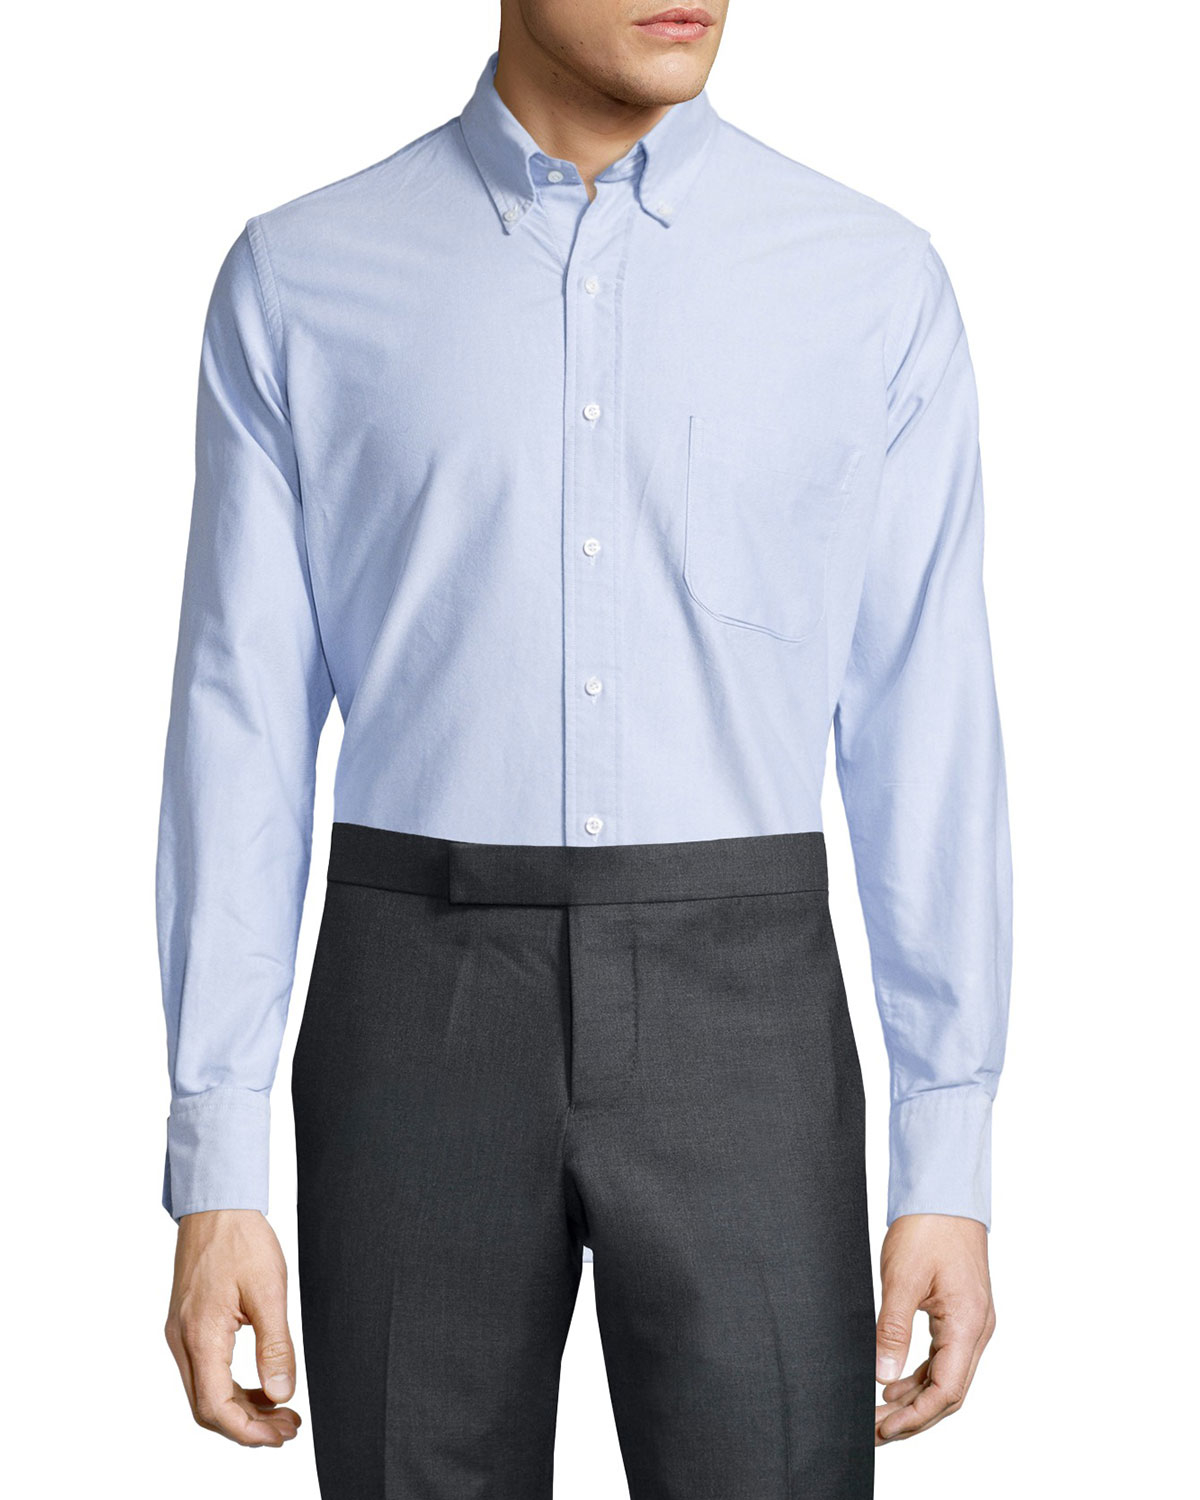 Thom browne oxford dress shirt in white for men blue lyst for White oxford shirt mens